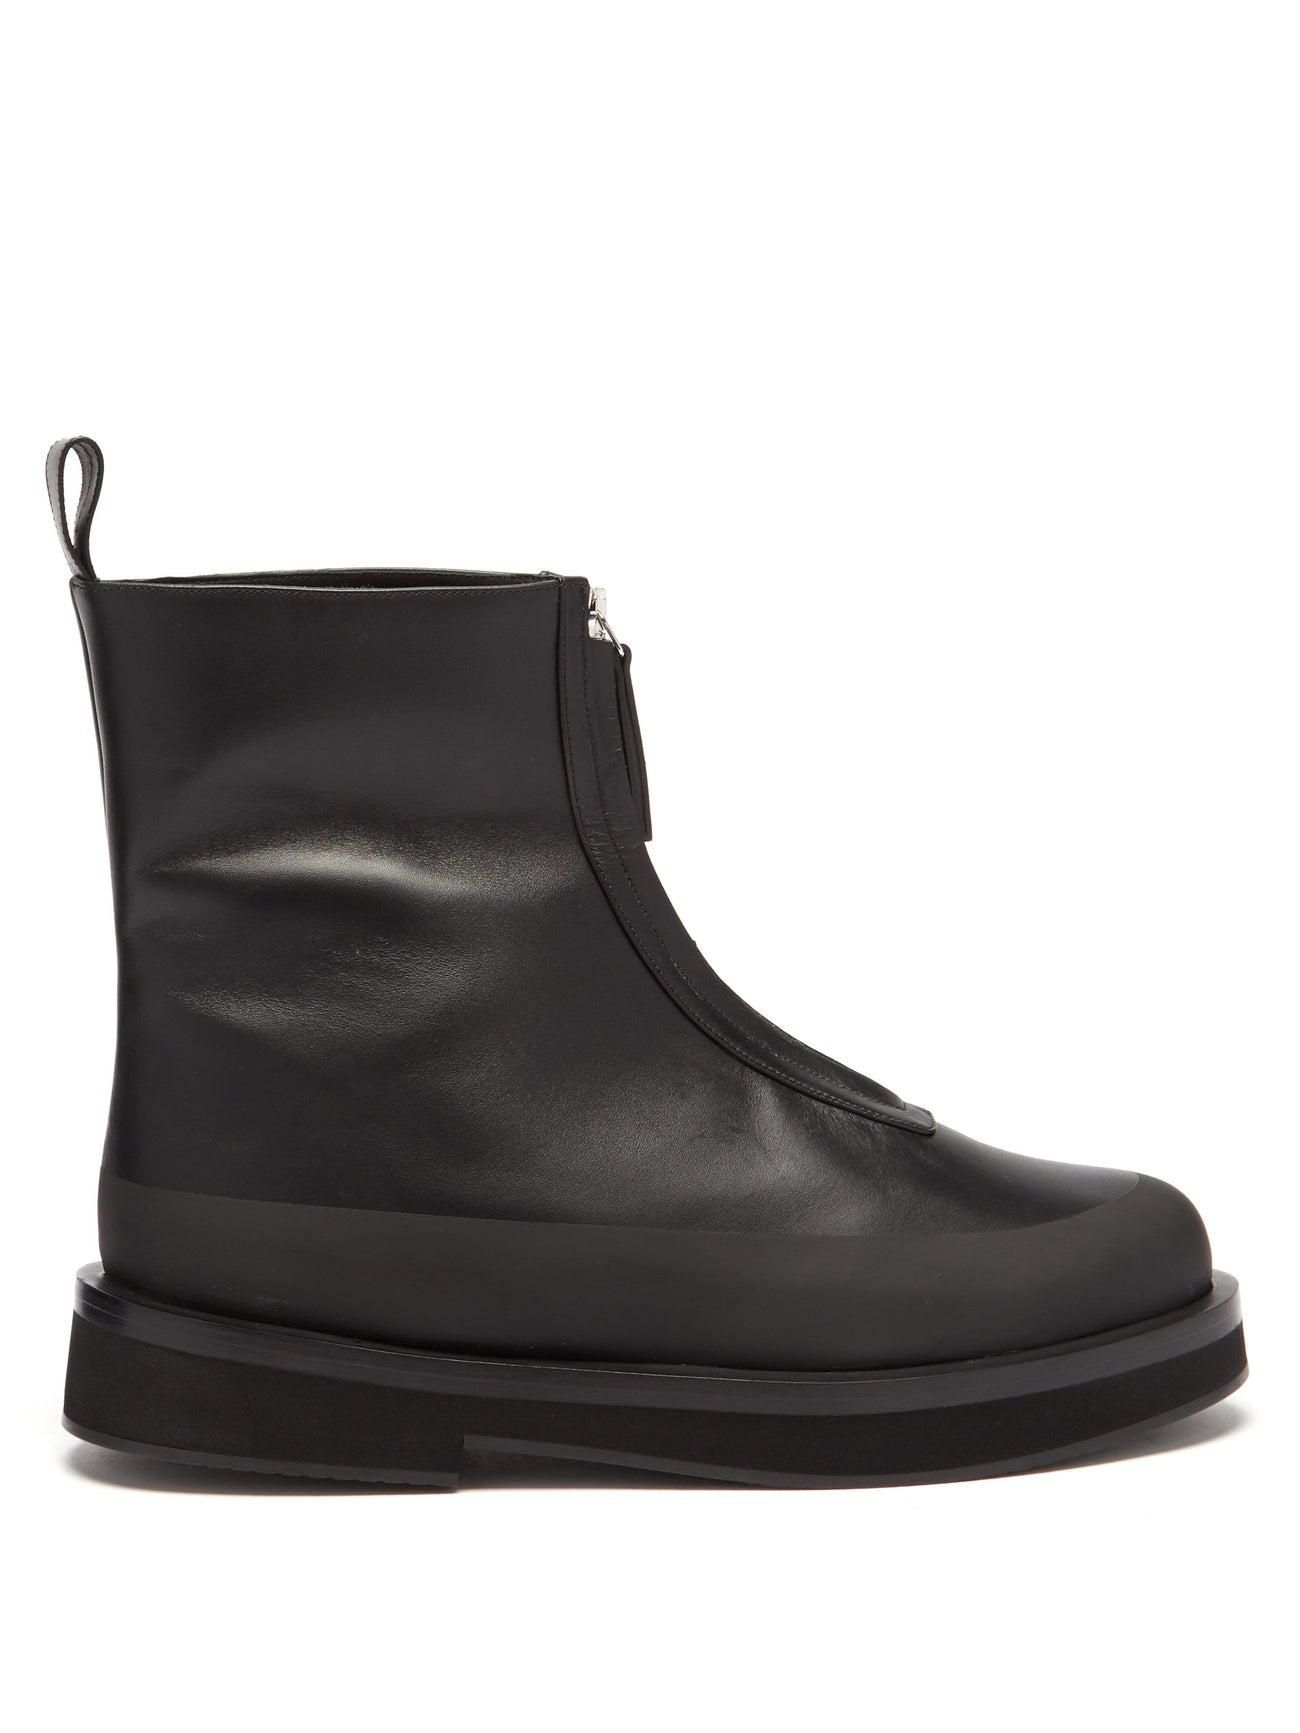 neous malmok zipped leather boots